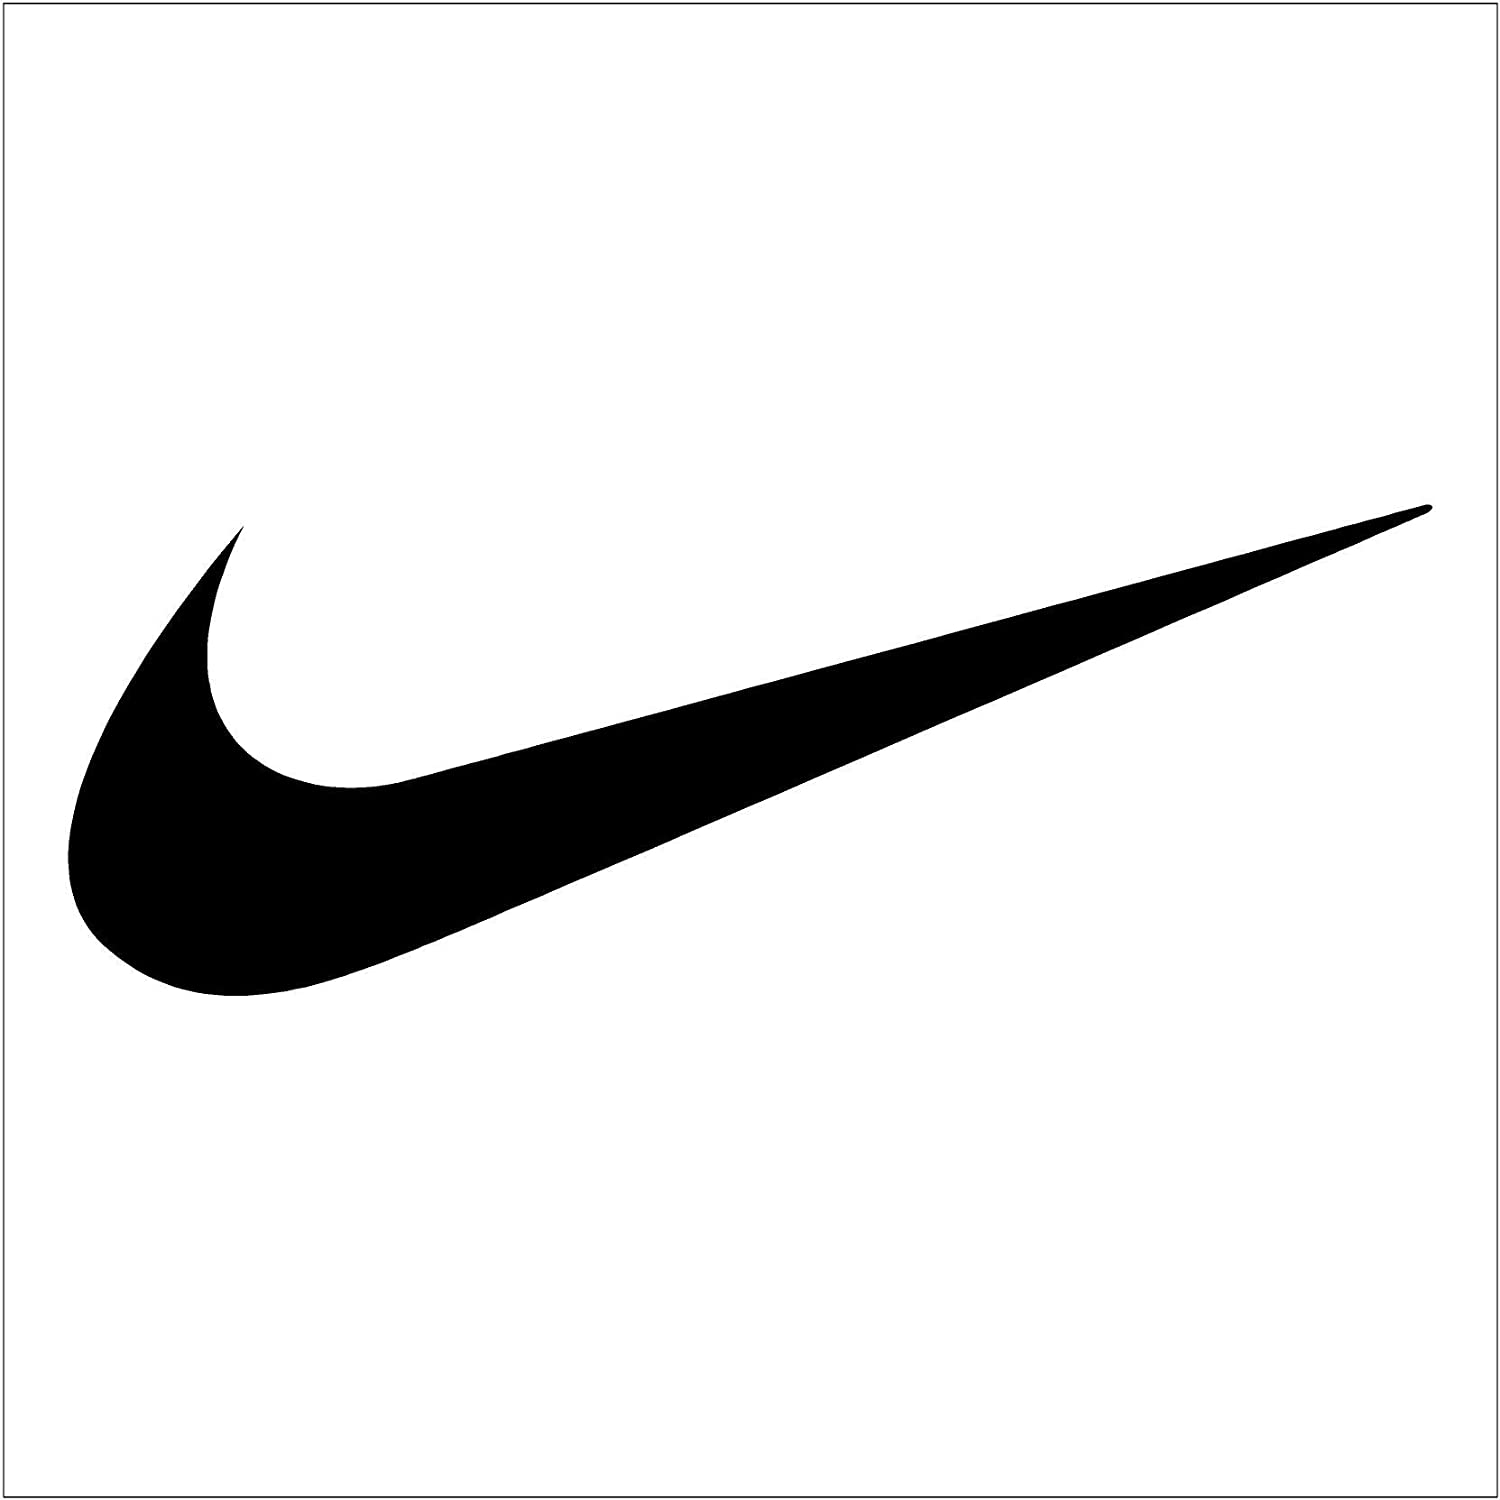 e9a140791c75 Amazon.com  Crawford Graphix Nike Swoosh Logo Vinyl Sticker 2 Pack (6